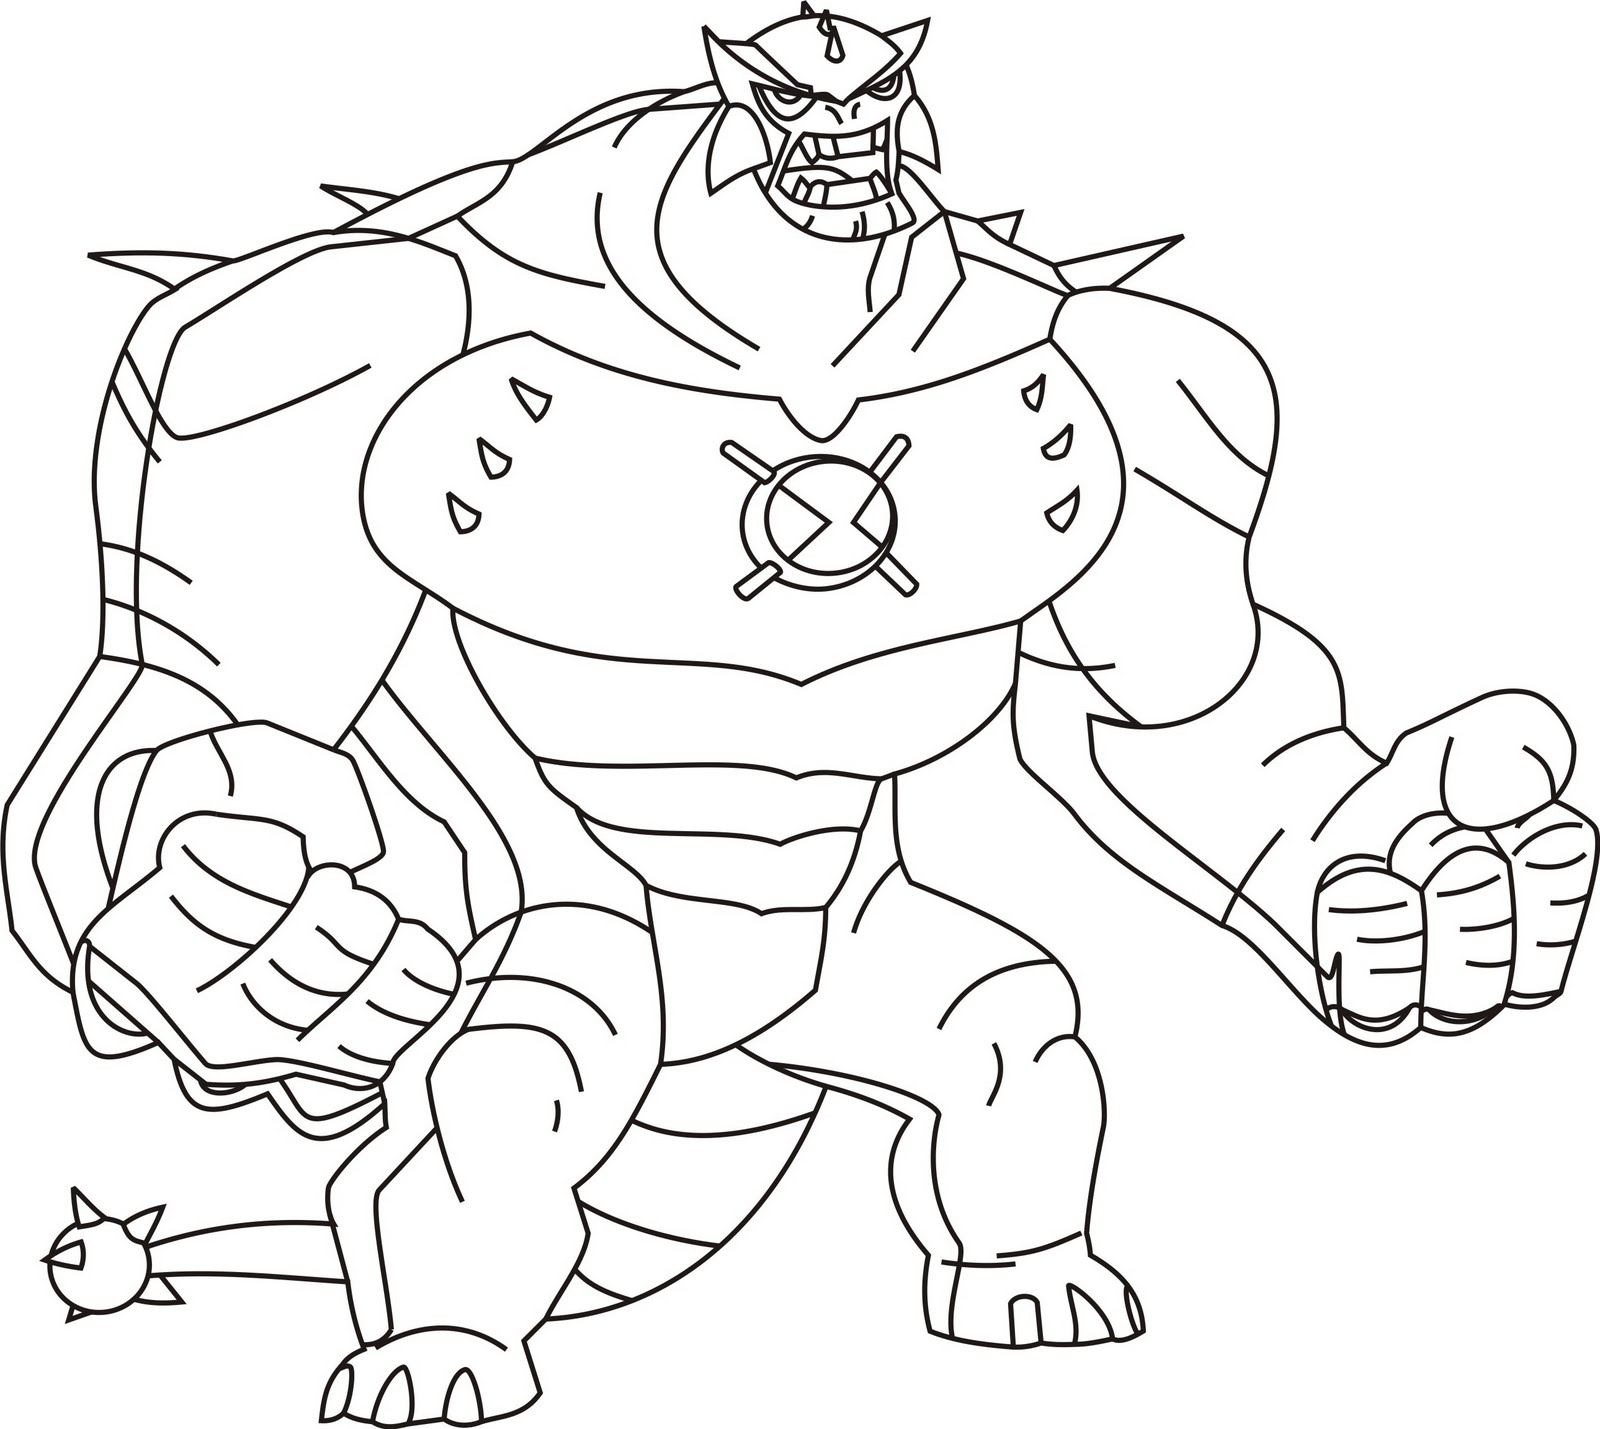 ben coloring pages - photo#6